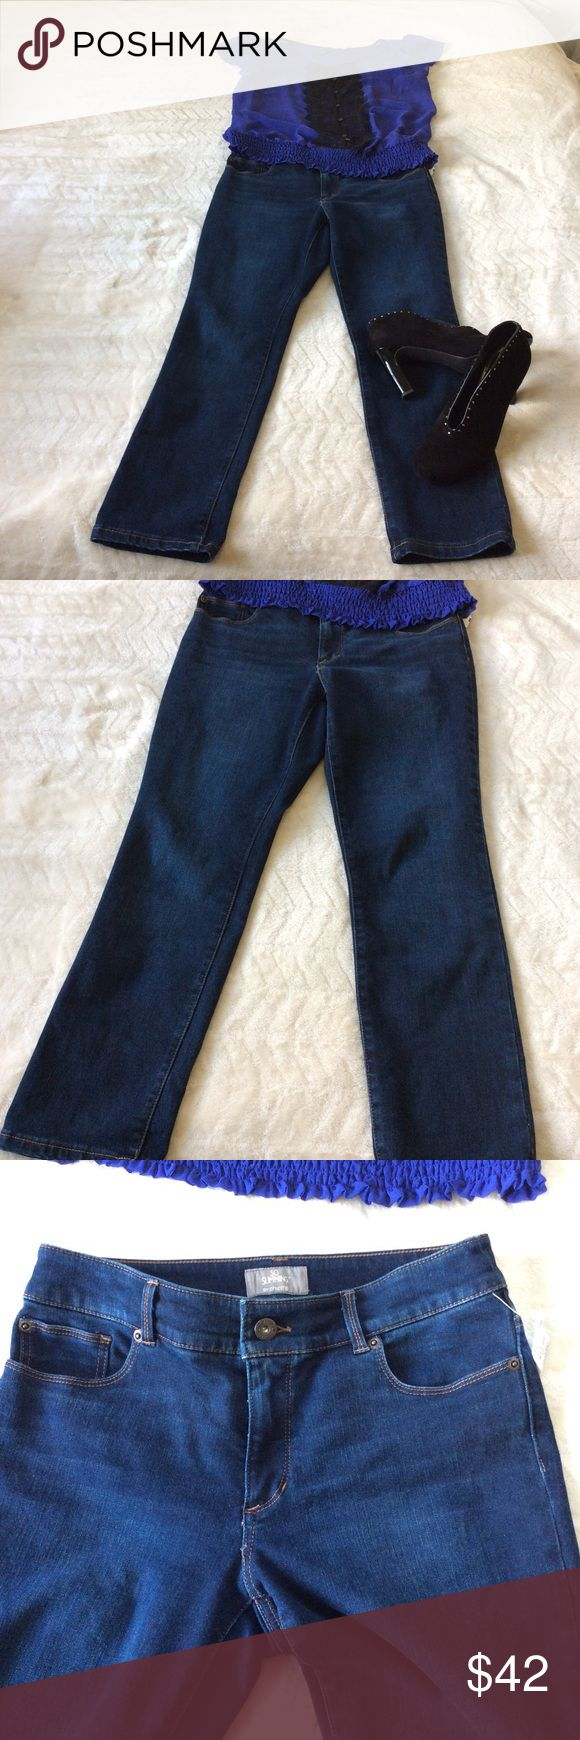 So Slimming by Chico's Great Condition - Size 0.5 So Slimming by Chico's jeans. Nice Dark wash from the Chico's Platinum Collection. It has a nice Stretch to them and are in wonderful condition. Size 0.5; which according to their size chart is a 6. Chico's Jeans Skinny